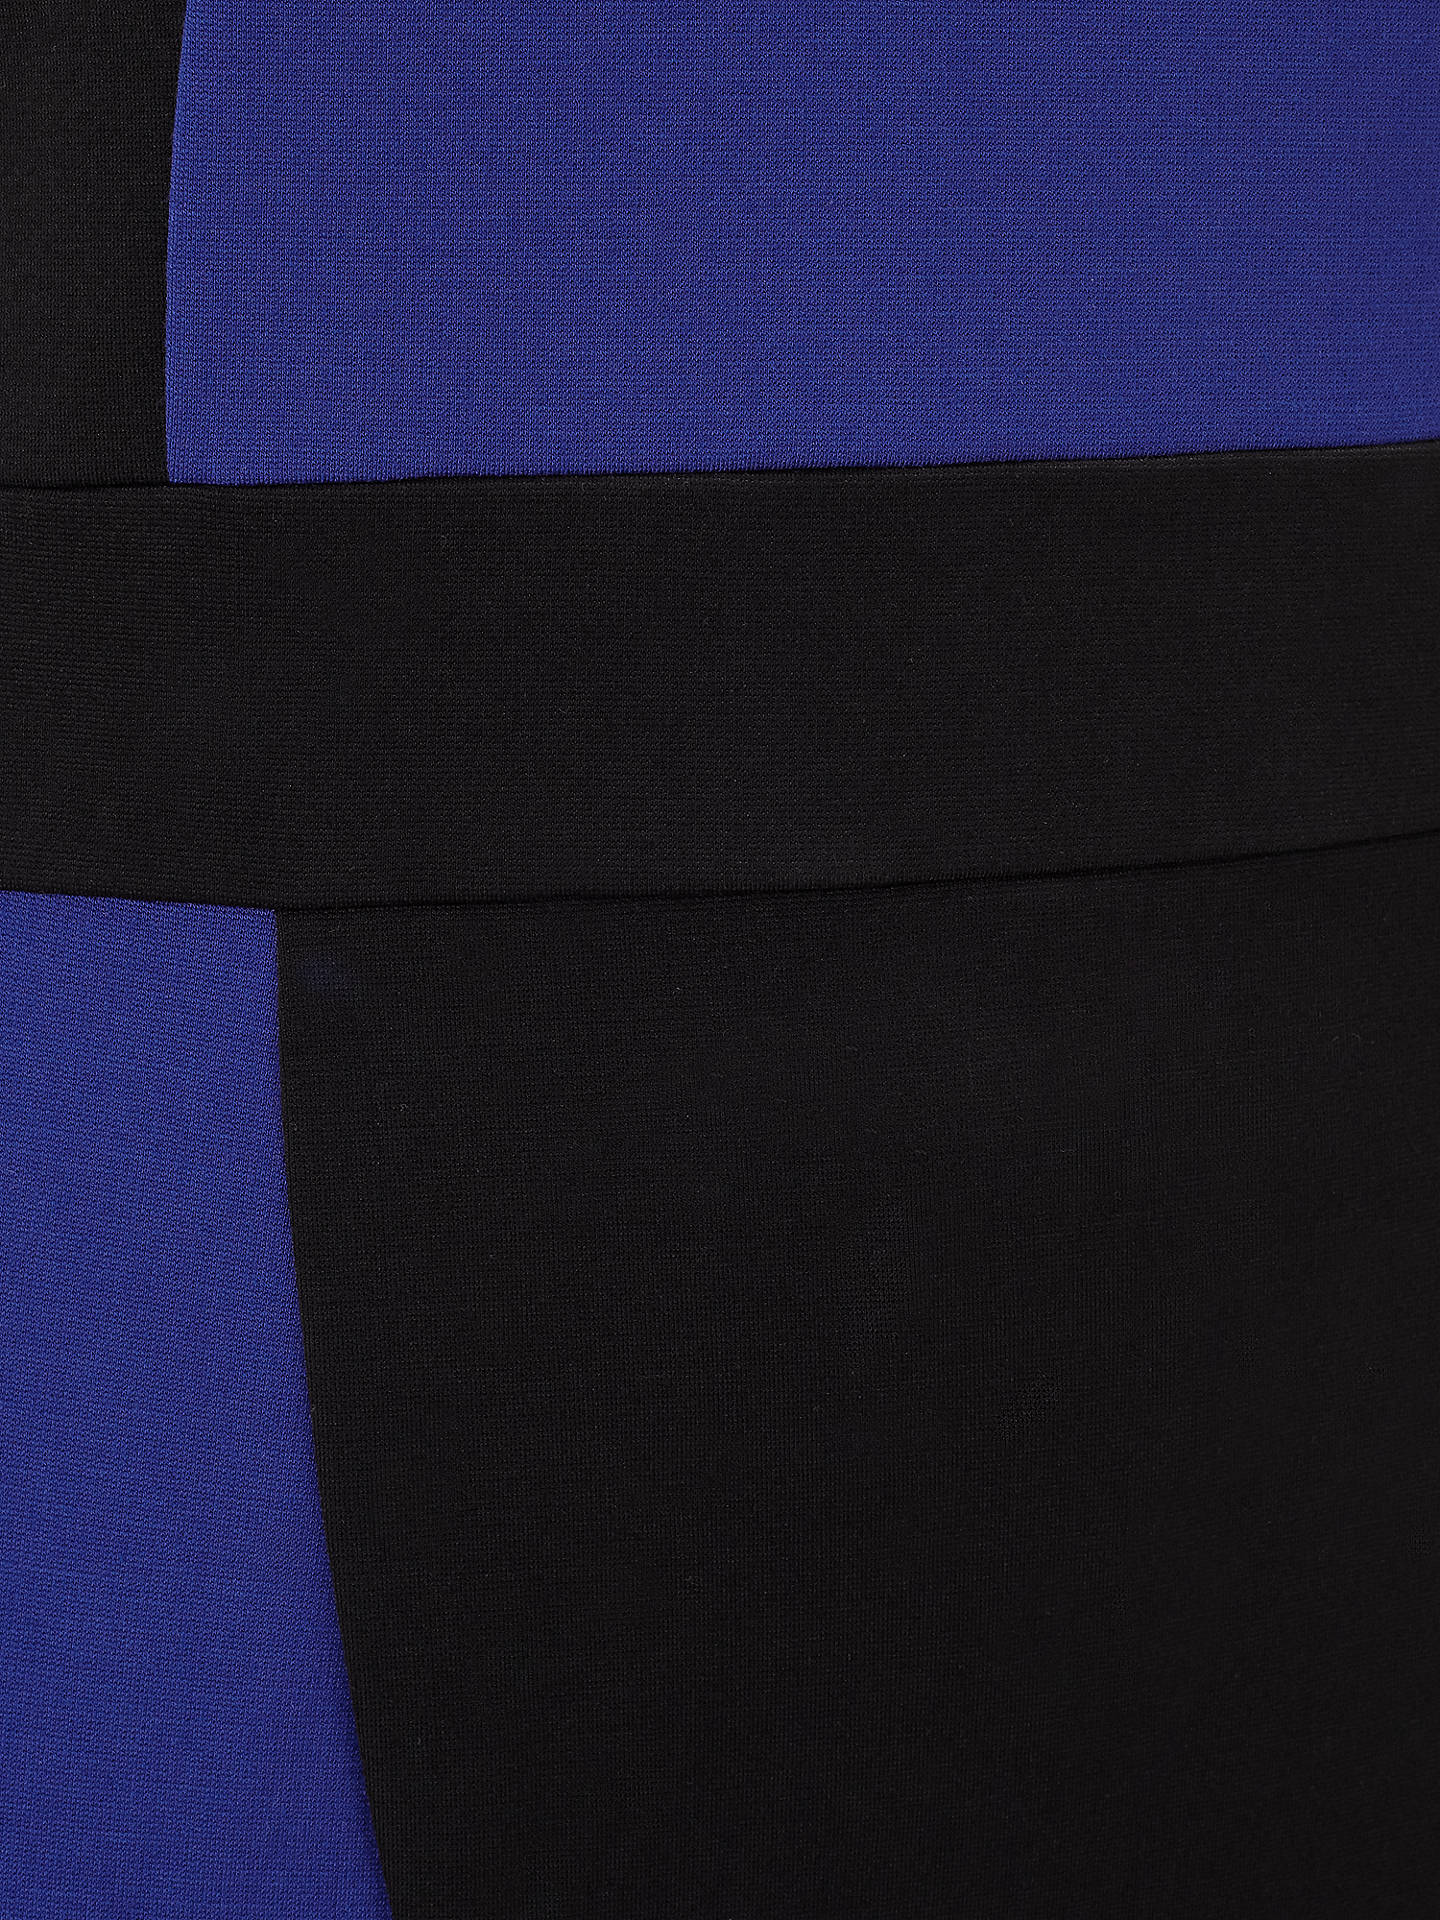 Buy Studio 8 Caitlin Dress, Cobalt/Black, 12 Online at johnlewis.com